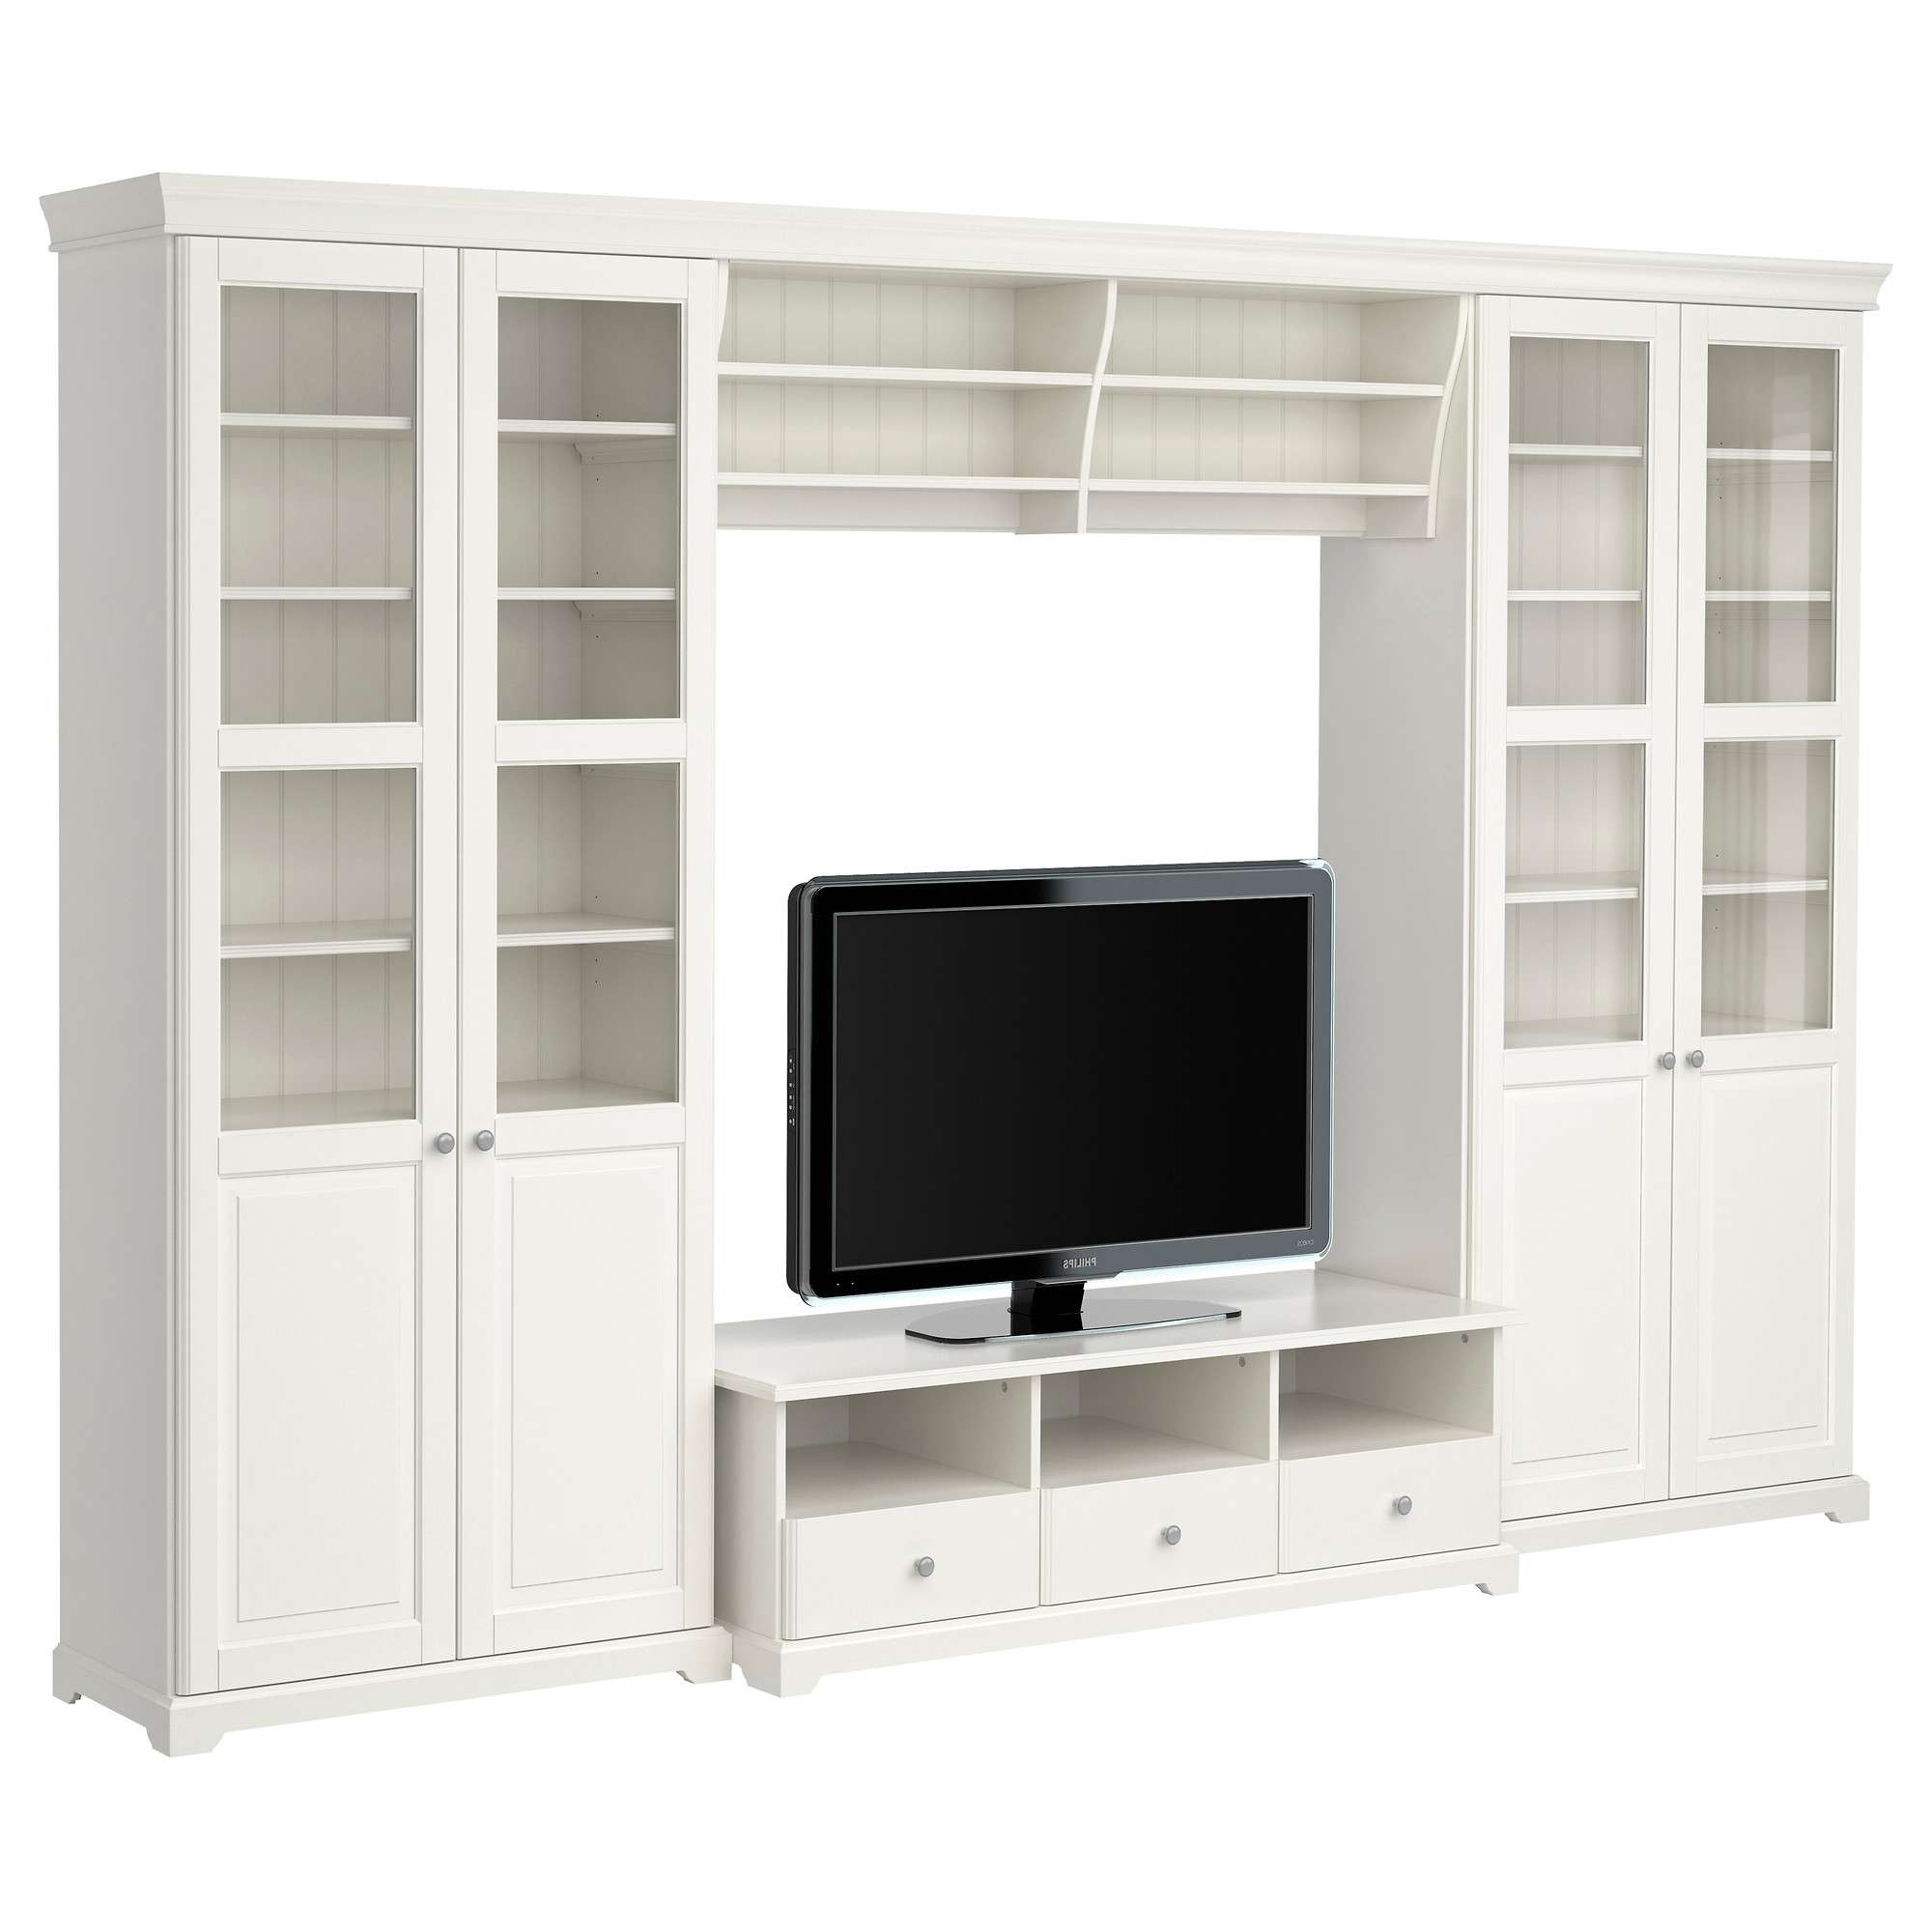 Tv Stands & Entertainment Centers – Ikea Within Tv Stands Bookshelf Combo (View 9 of 15)